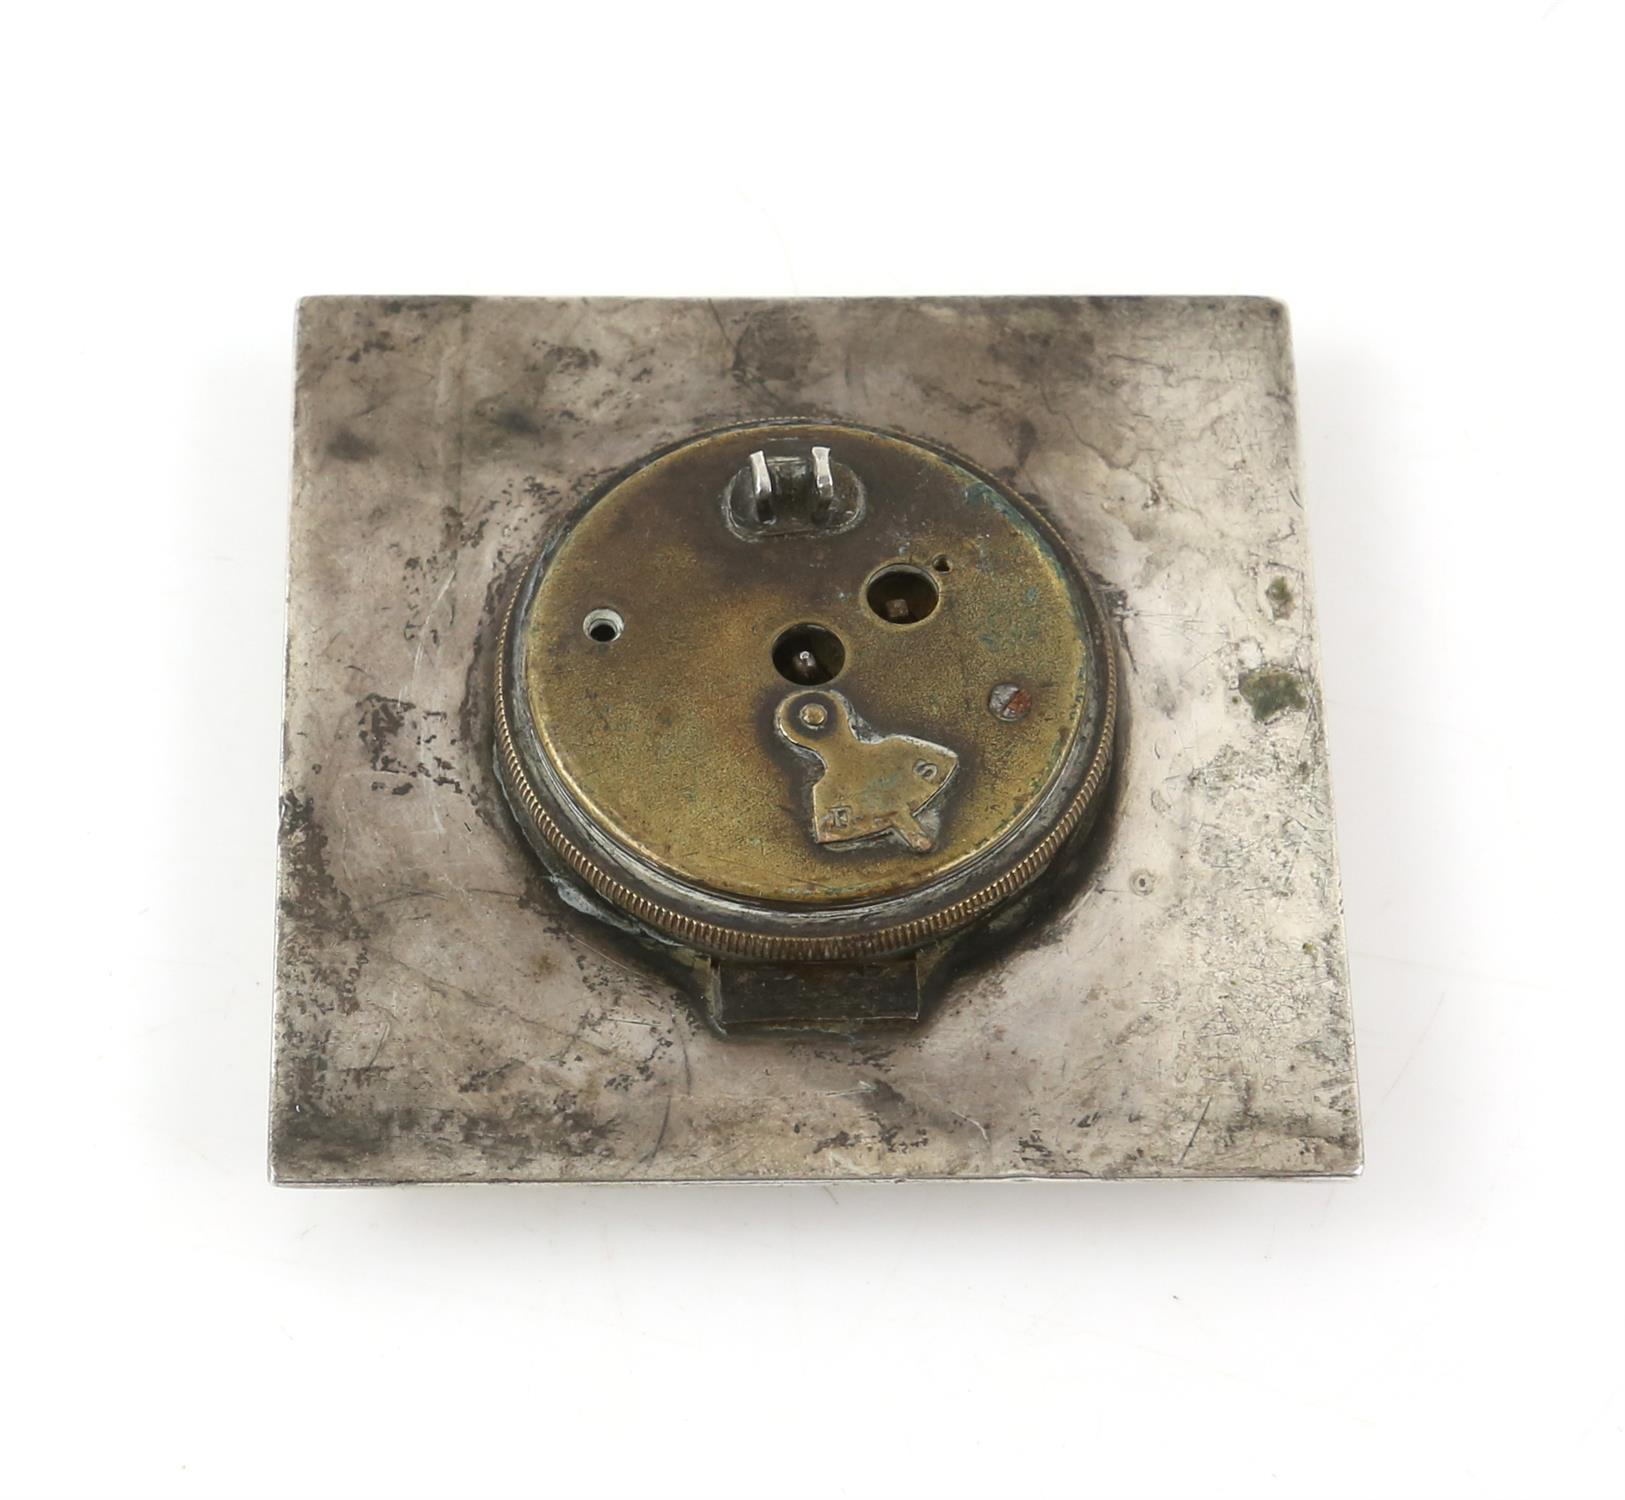 Walker and hall silver framed clock, an Indian silver white metal desk top card holder and a - Image 8 of 8